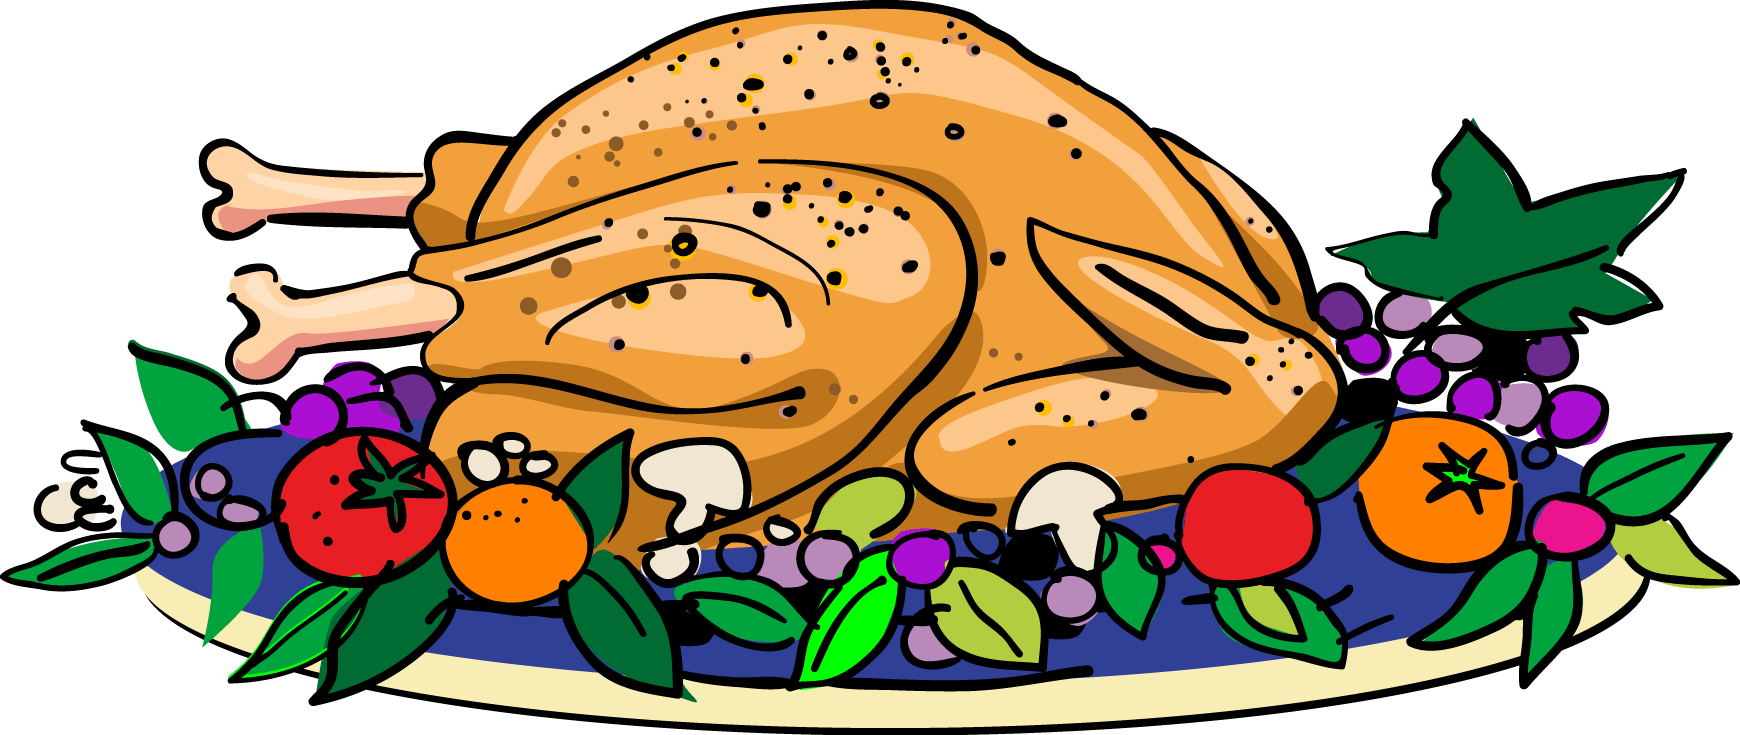 Appletree thanksgiving day care. Luncheon clipart parent